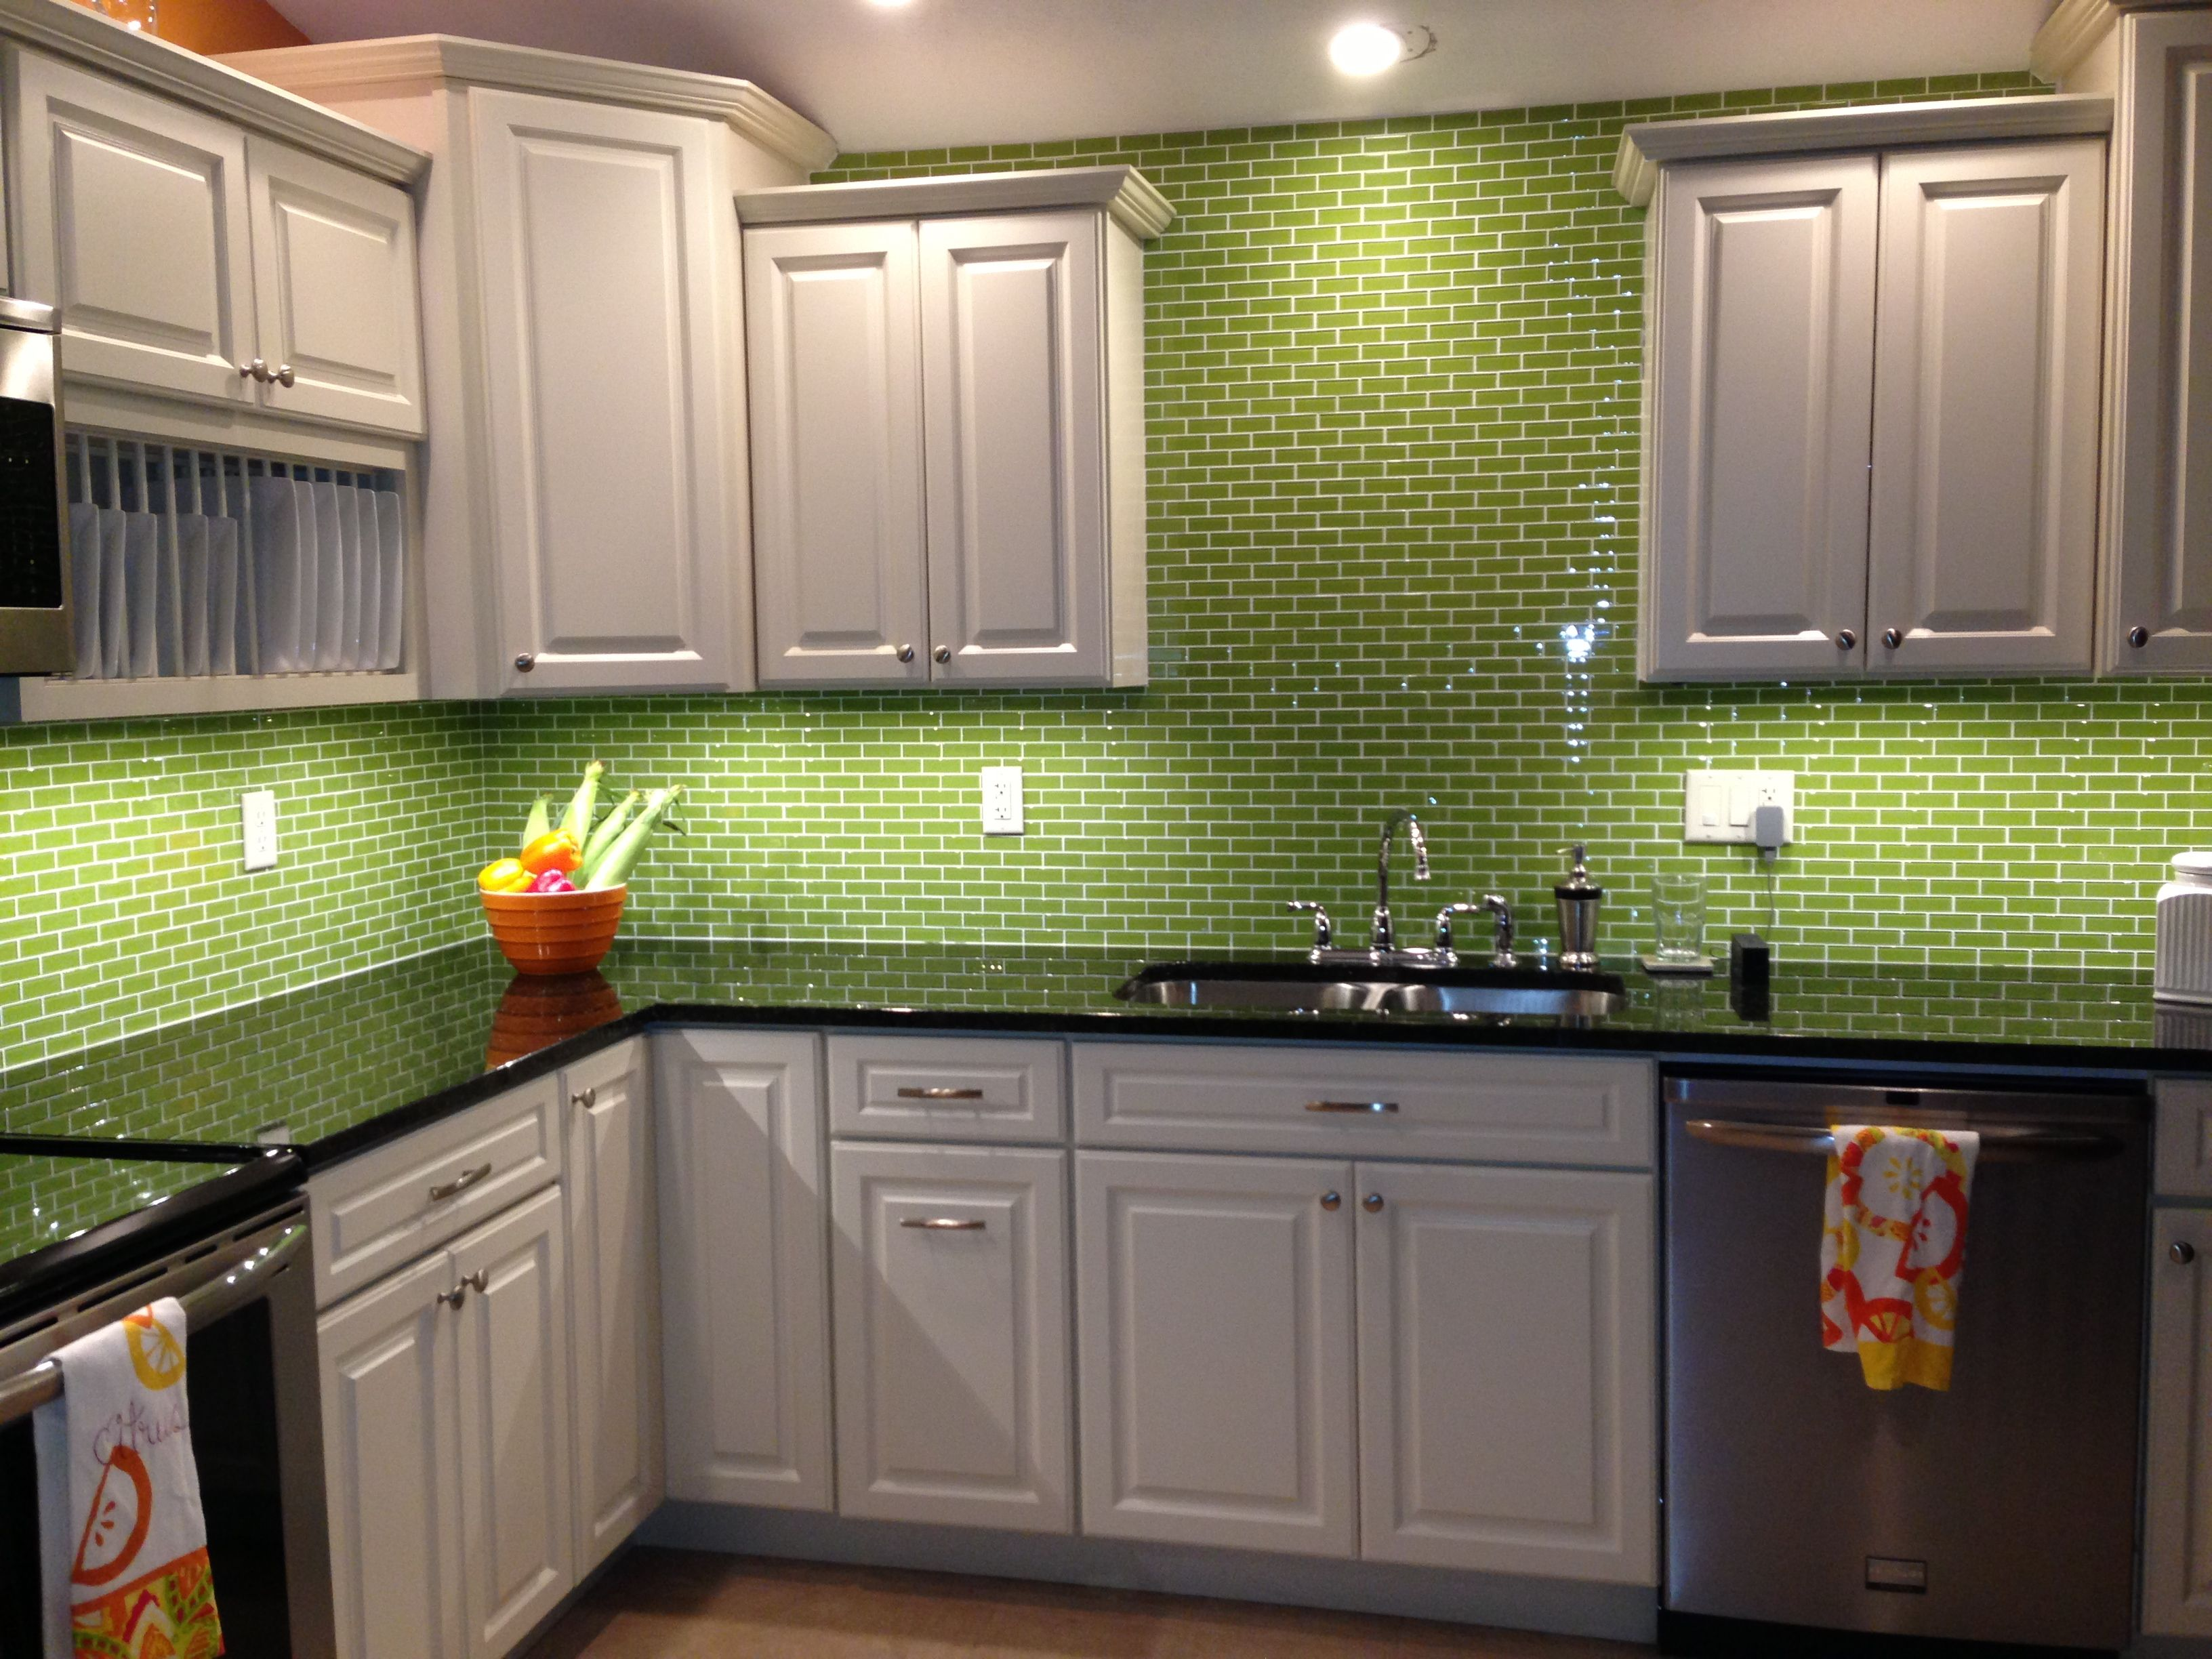 Lime green glass subway tile backsplash kitchen | Kitchen ideas ...